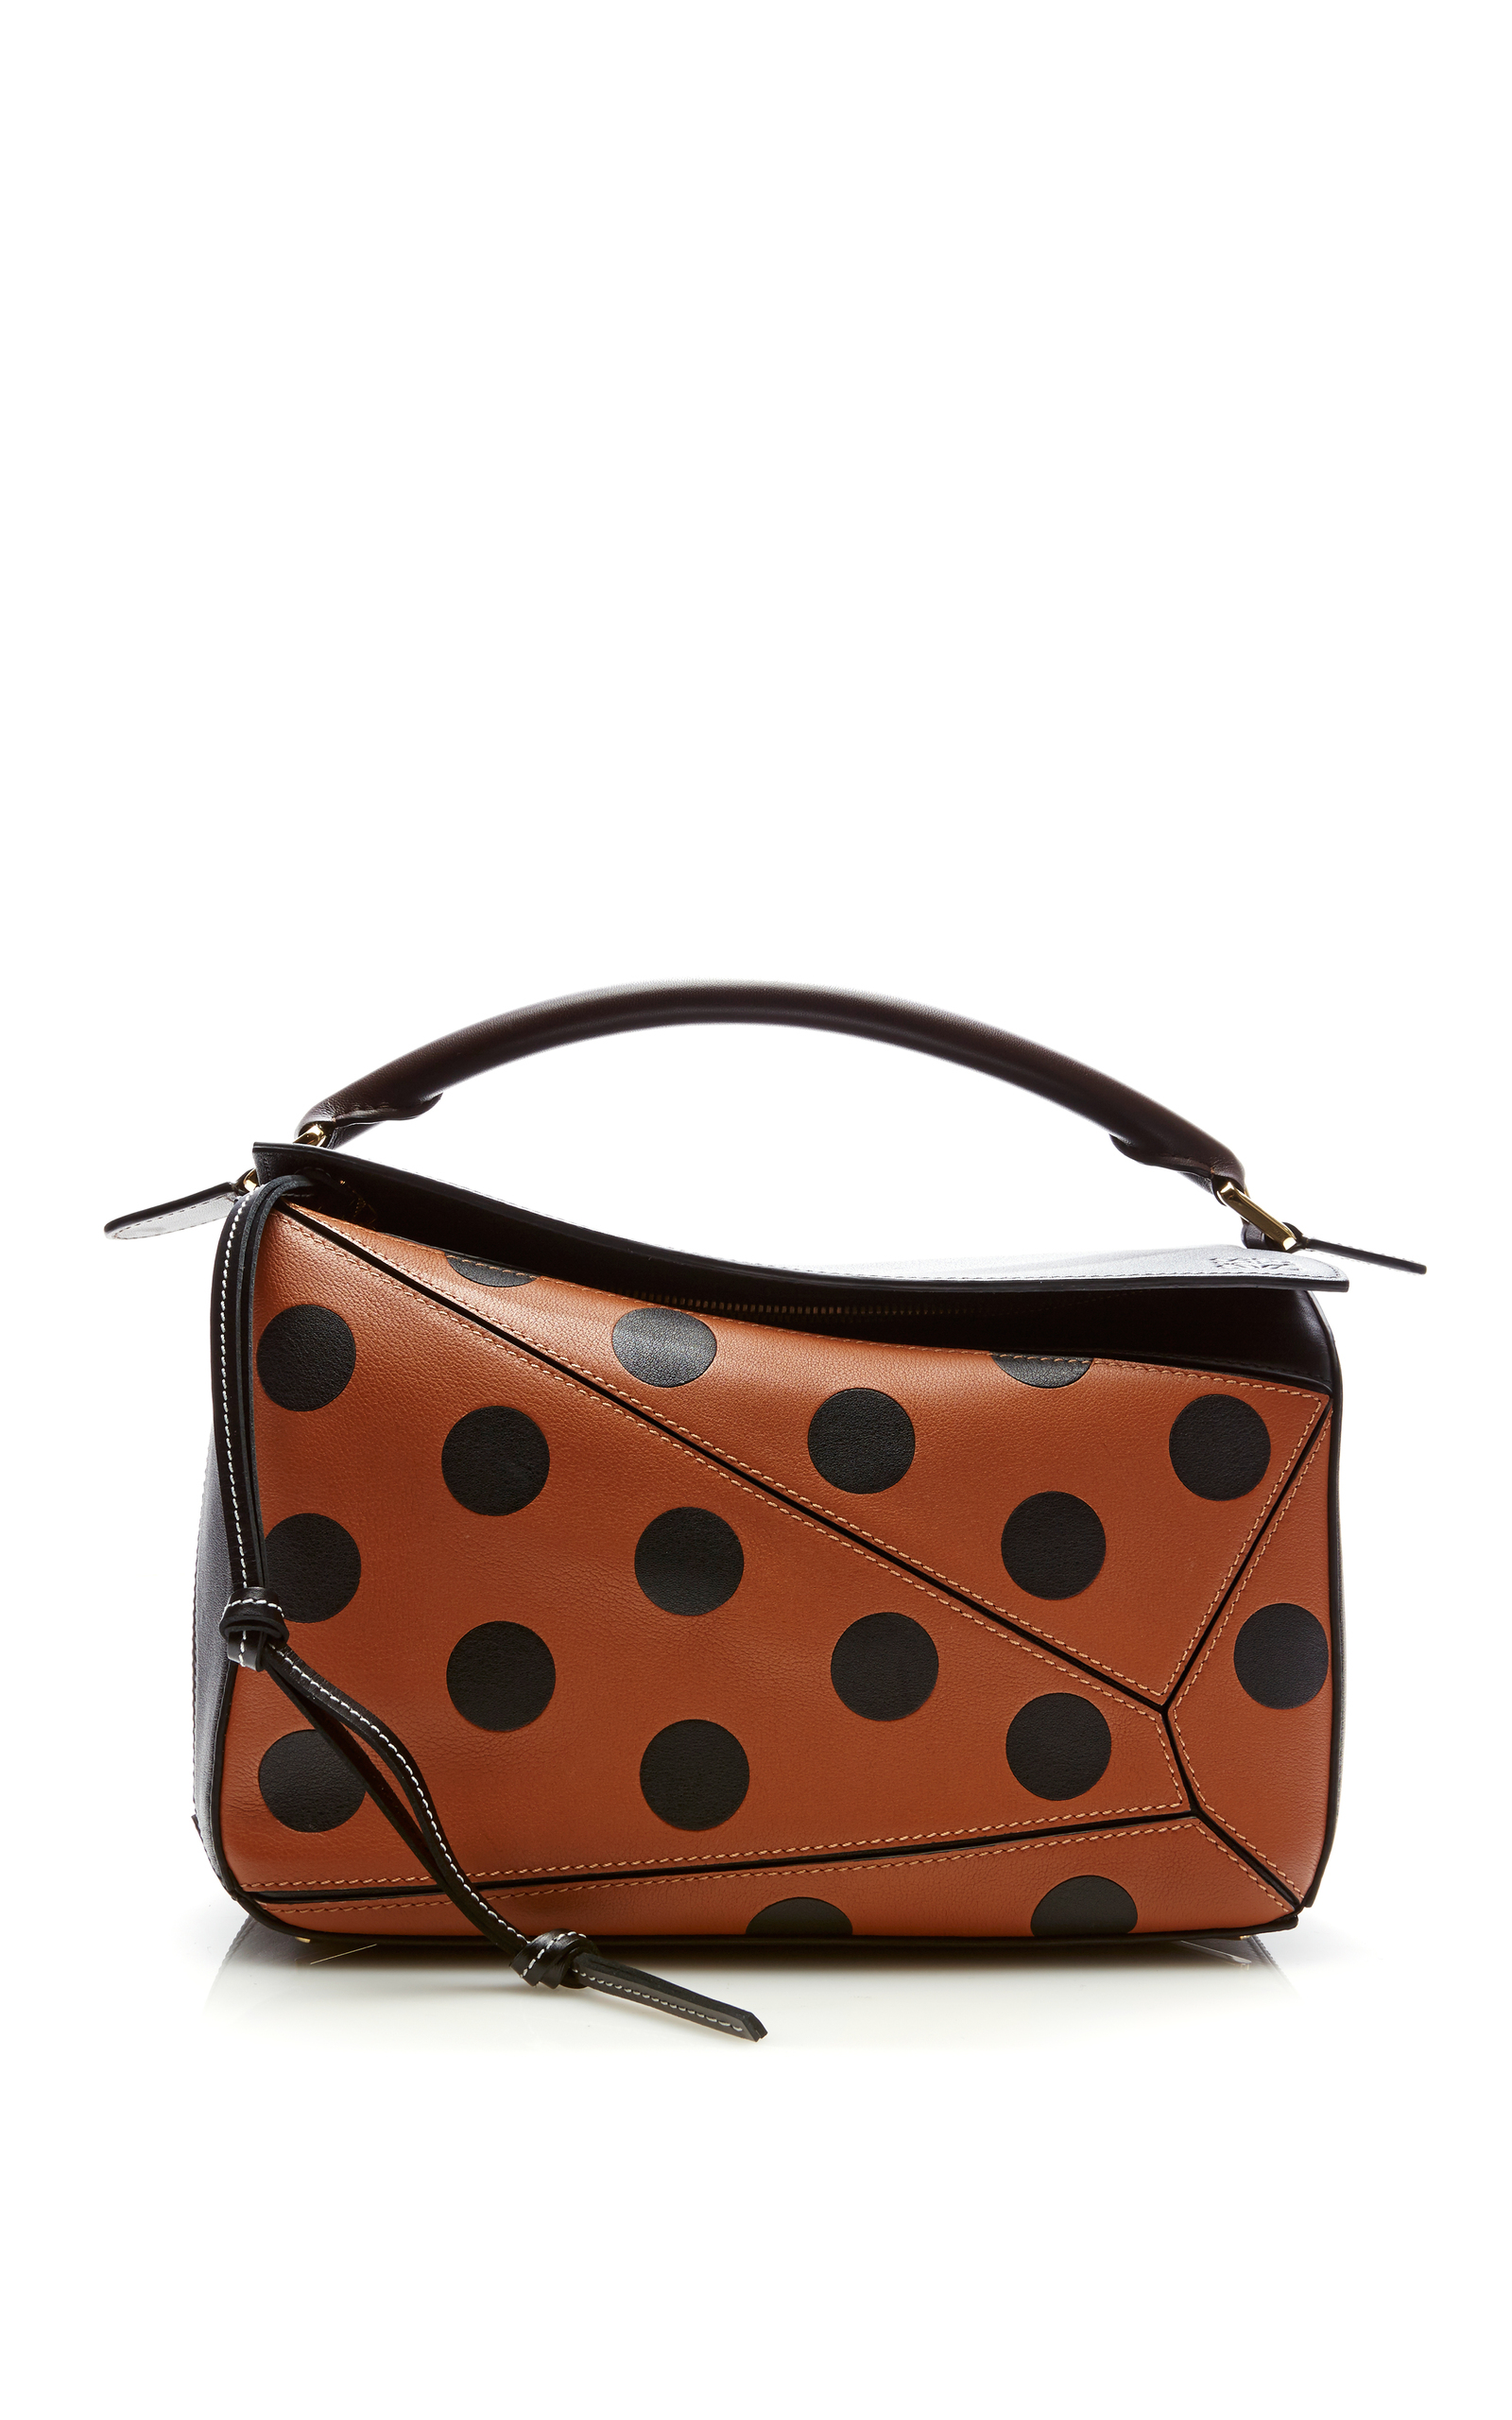 PUZZLE CIRCLES CALFSKIN LEATHER BAG - BEIGE